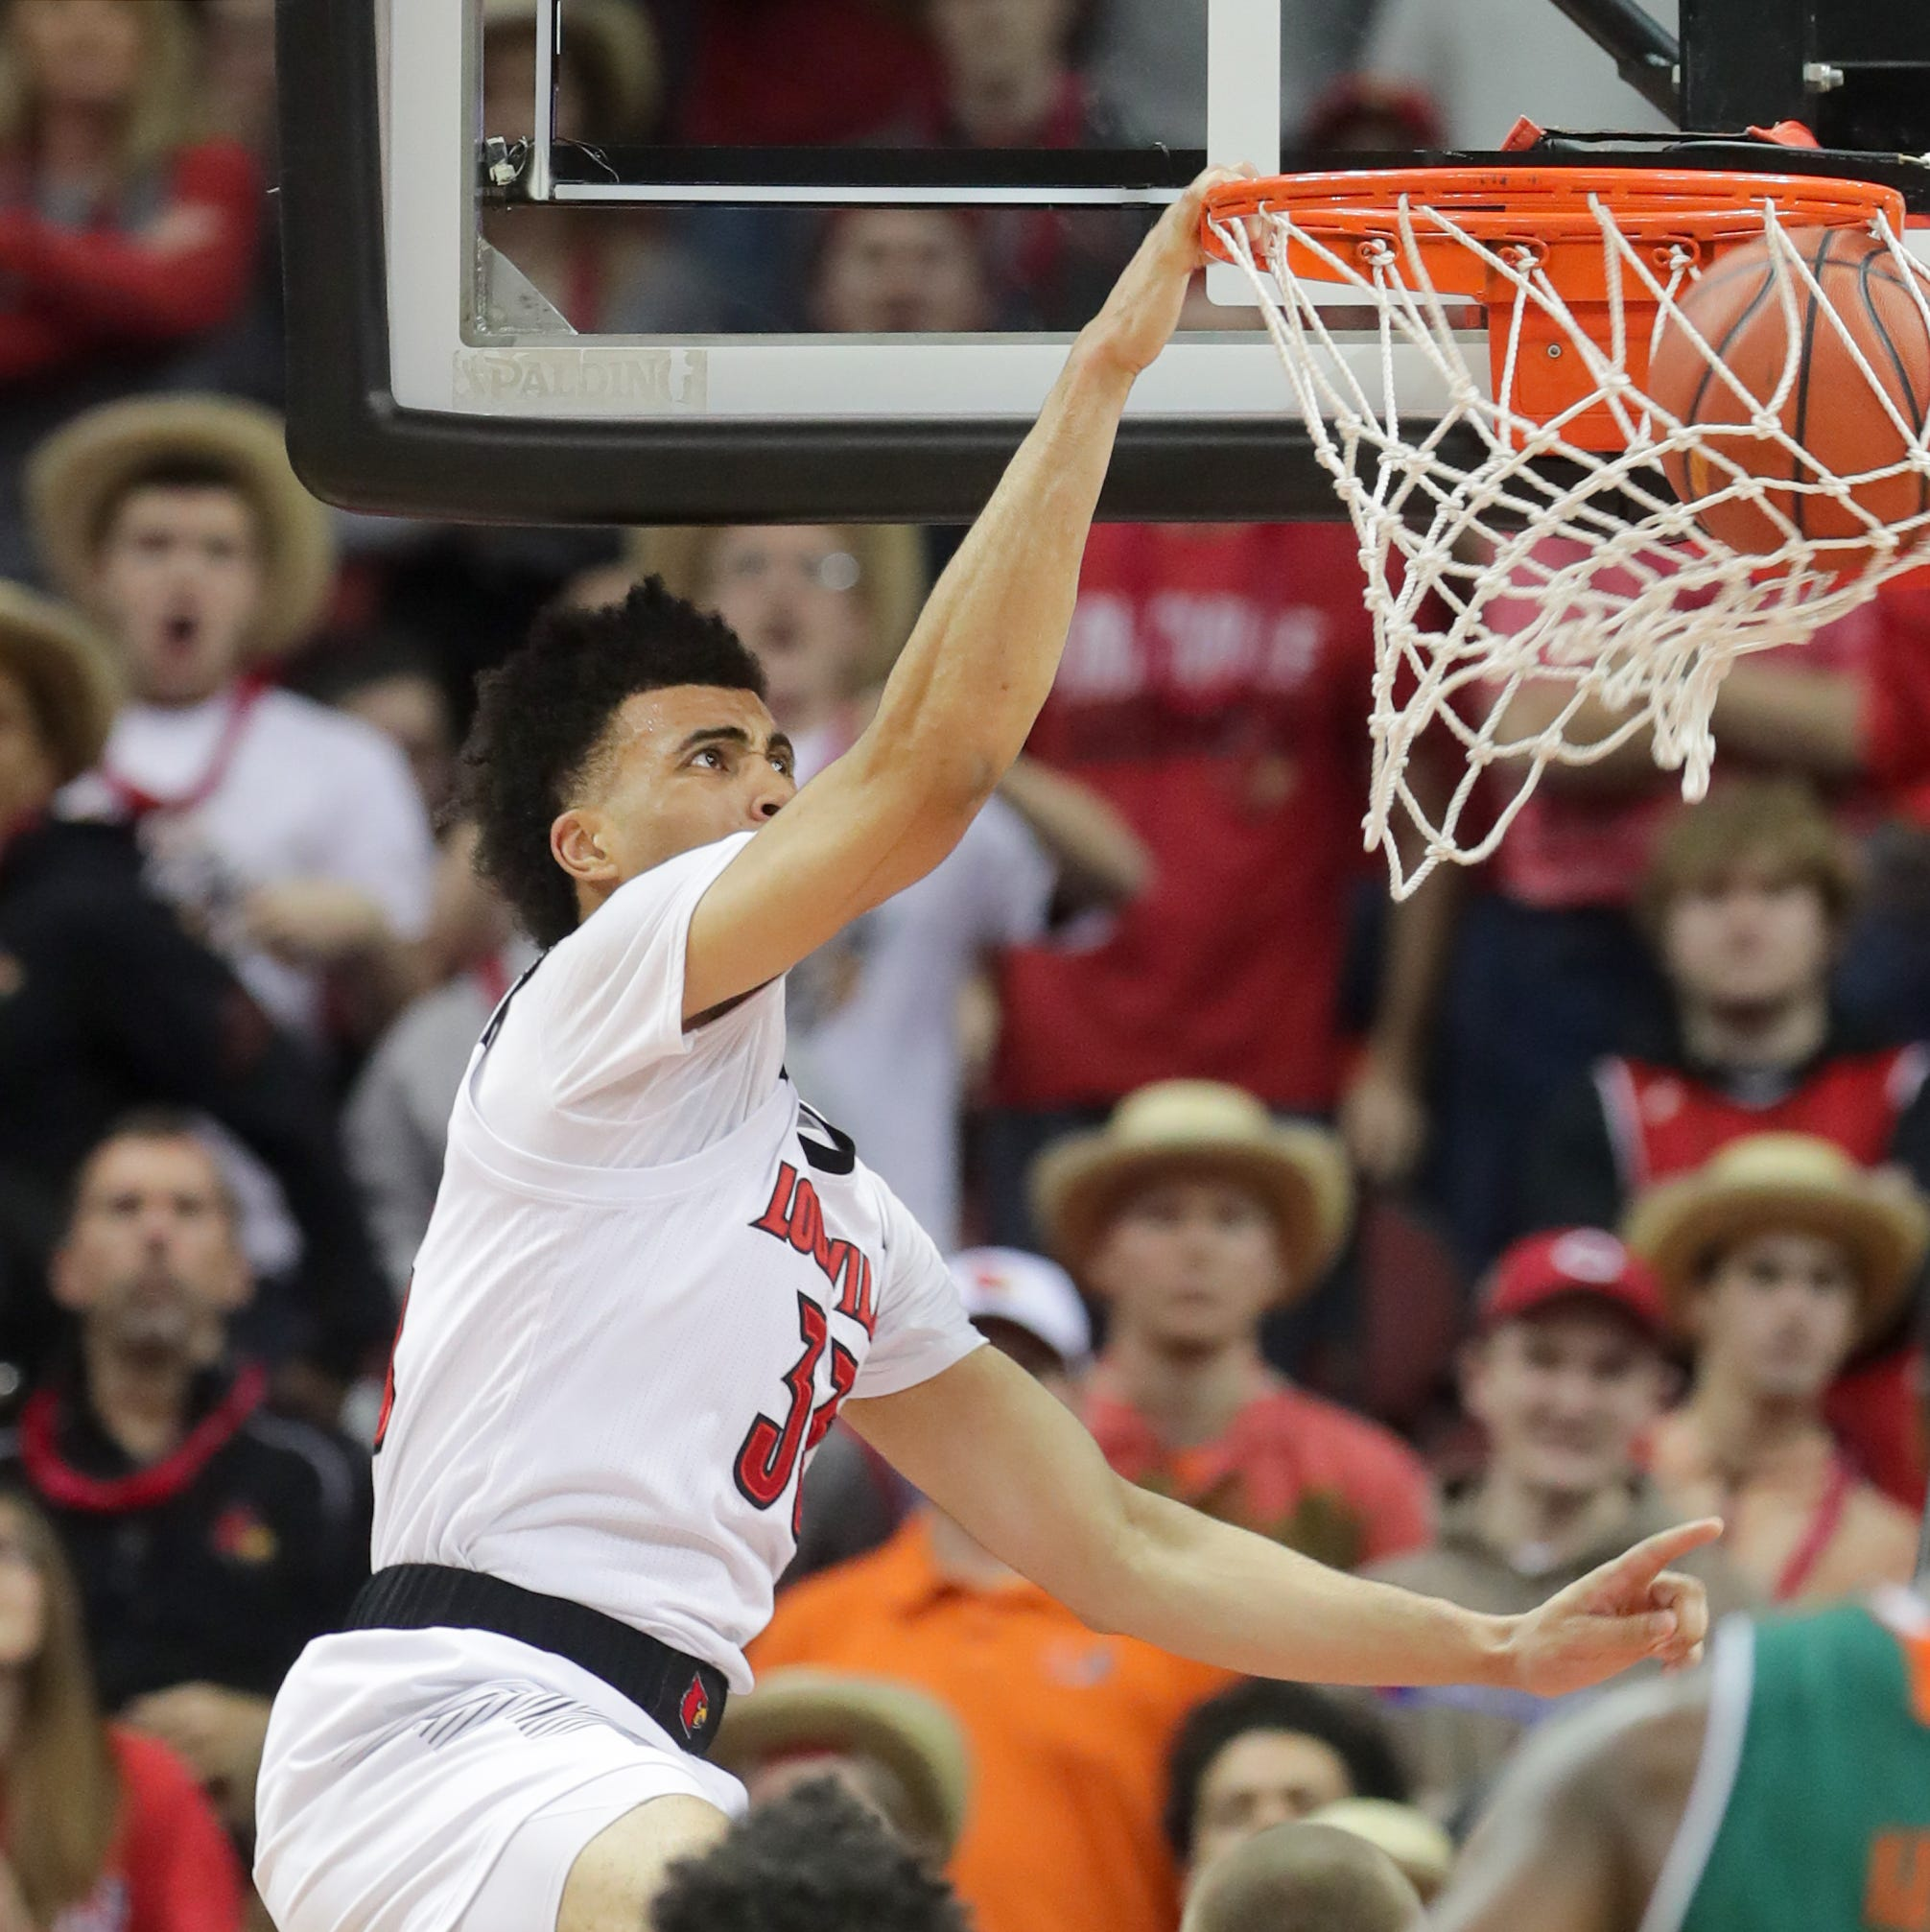 Where does Louisville basketball fit in the ACC? It's anybody's guess